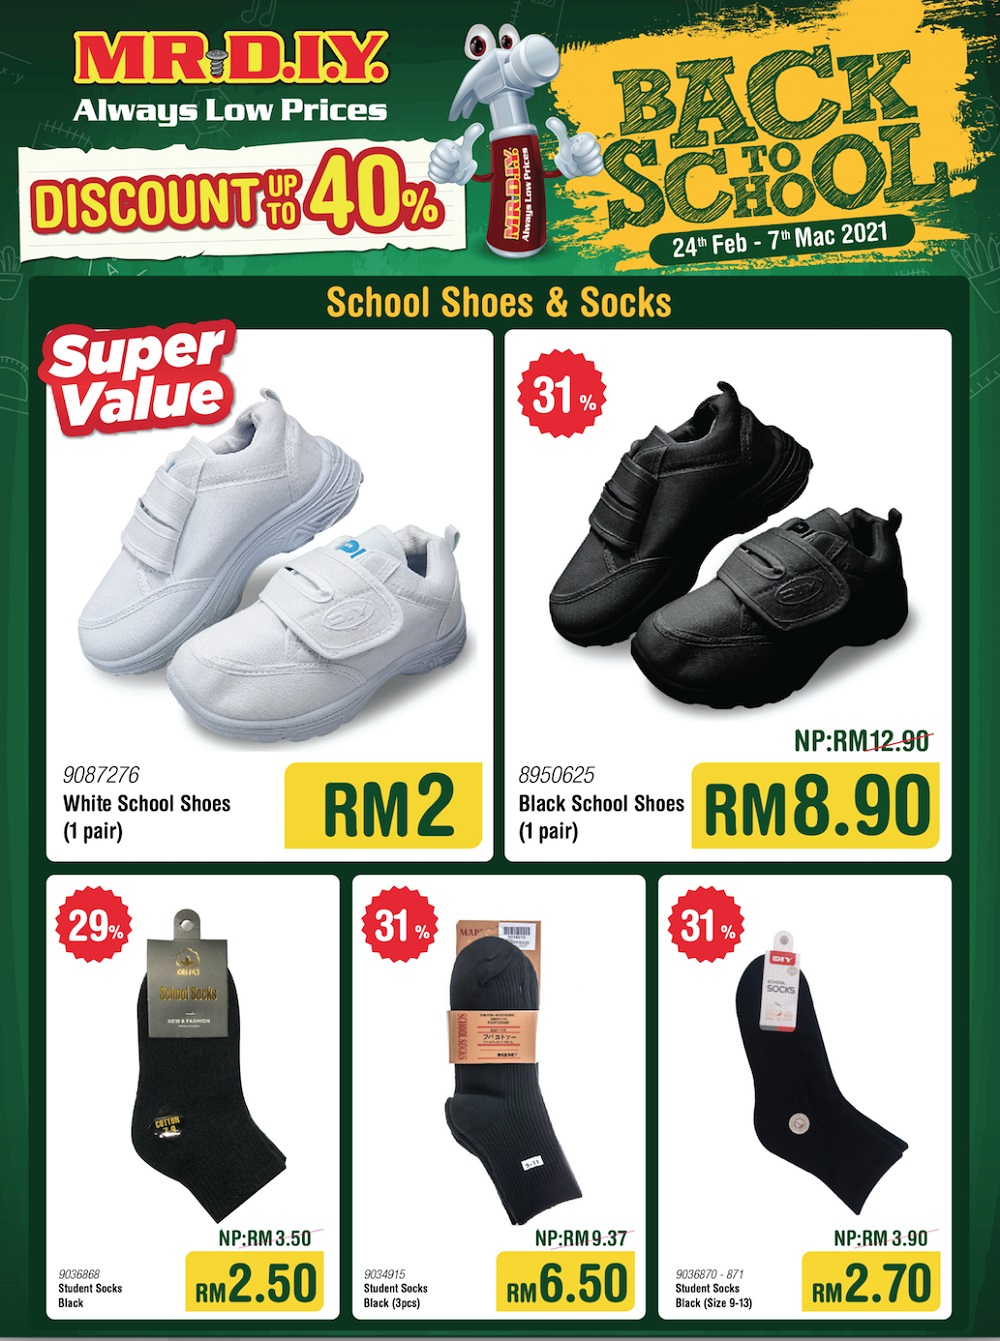 Snag ultimate savings with these discounted school shoes and socks (flyer applicable for West Malaysia only). — Picture courtesy of MR.DIY